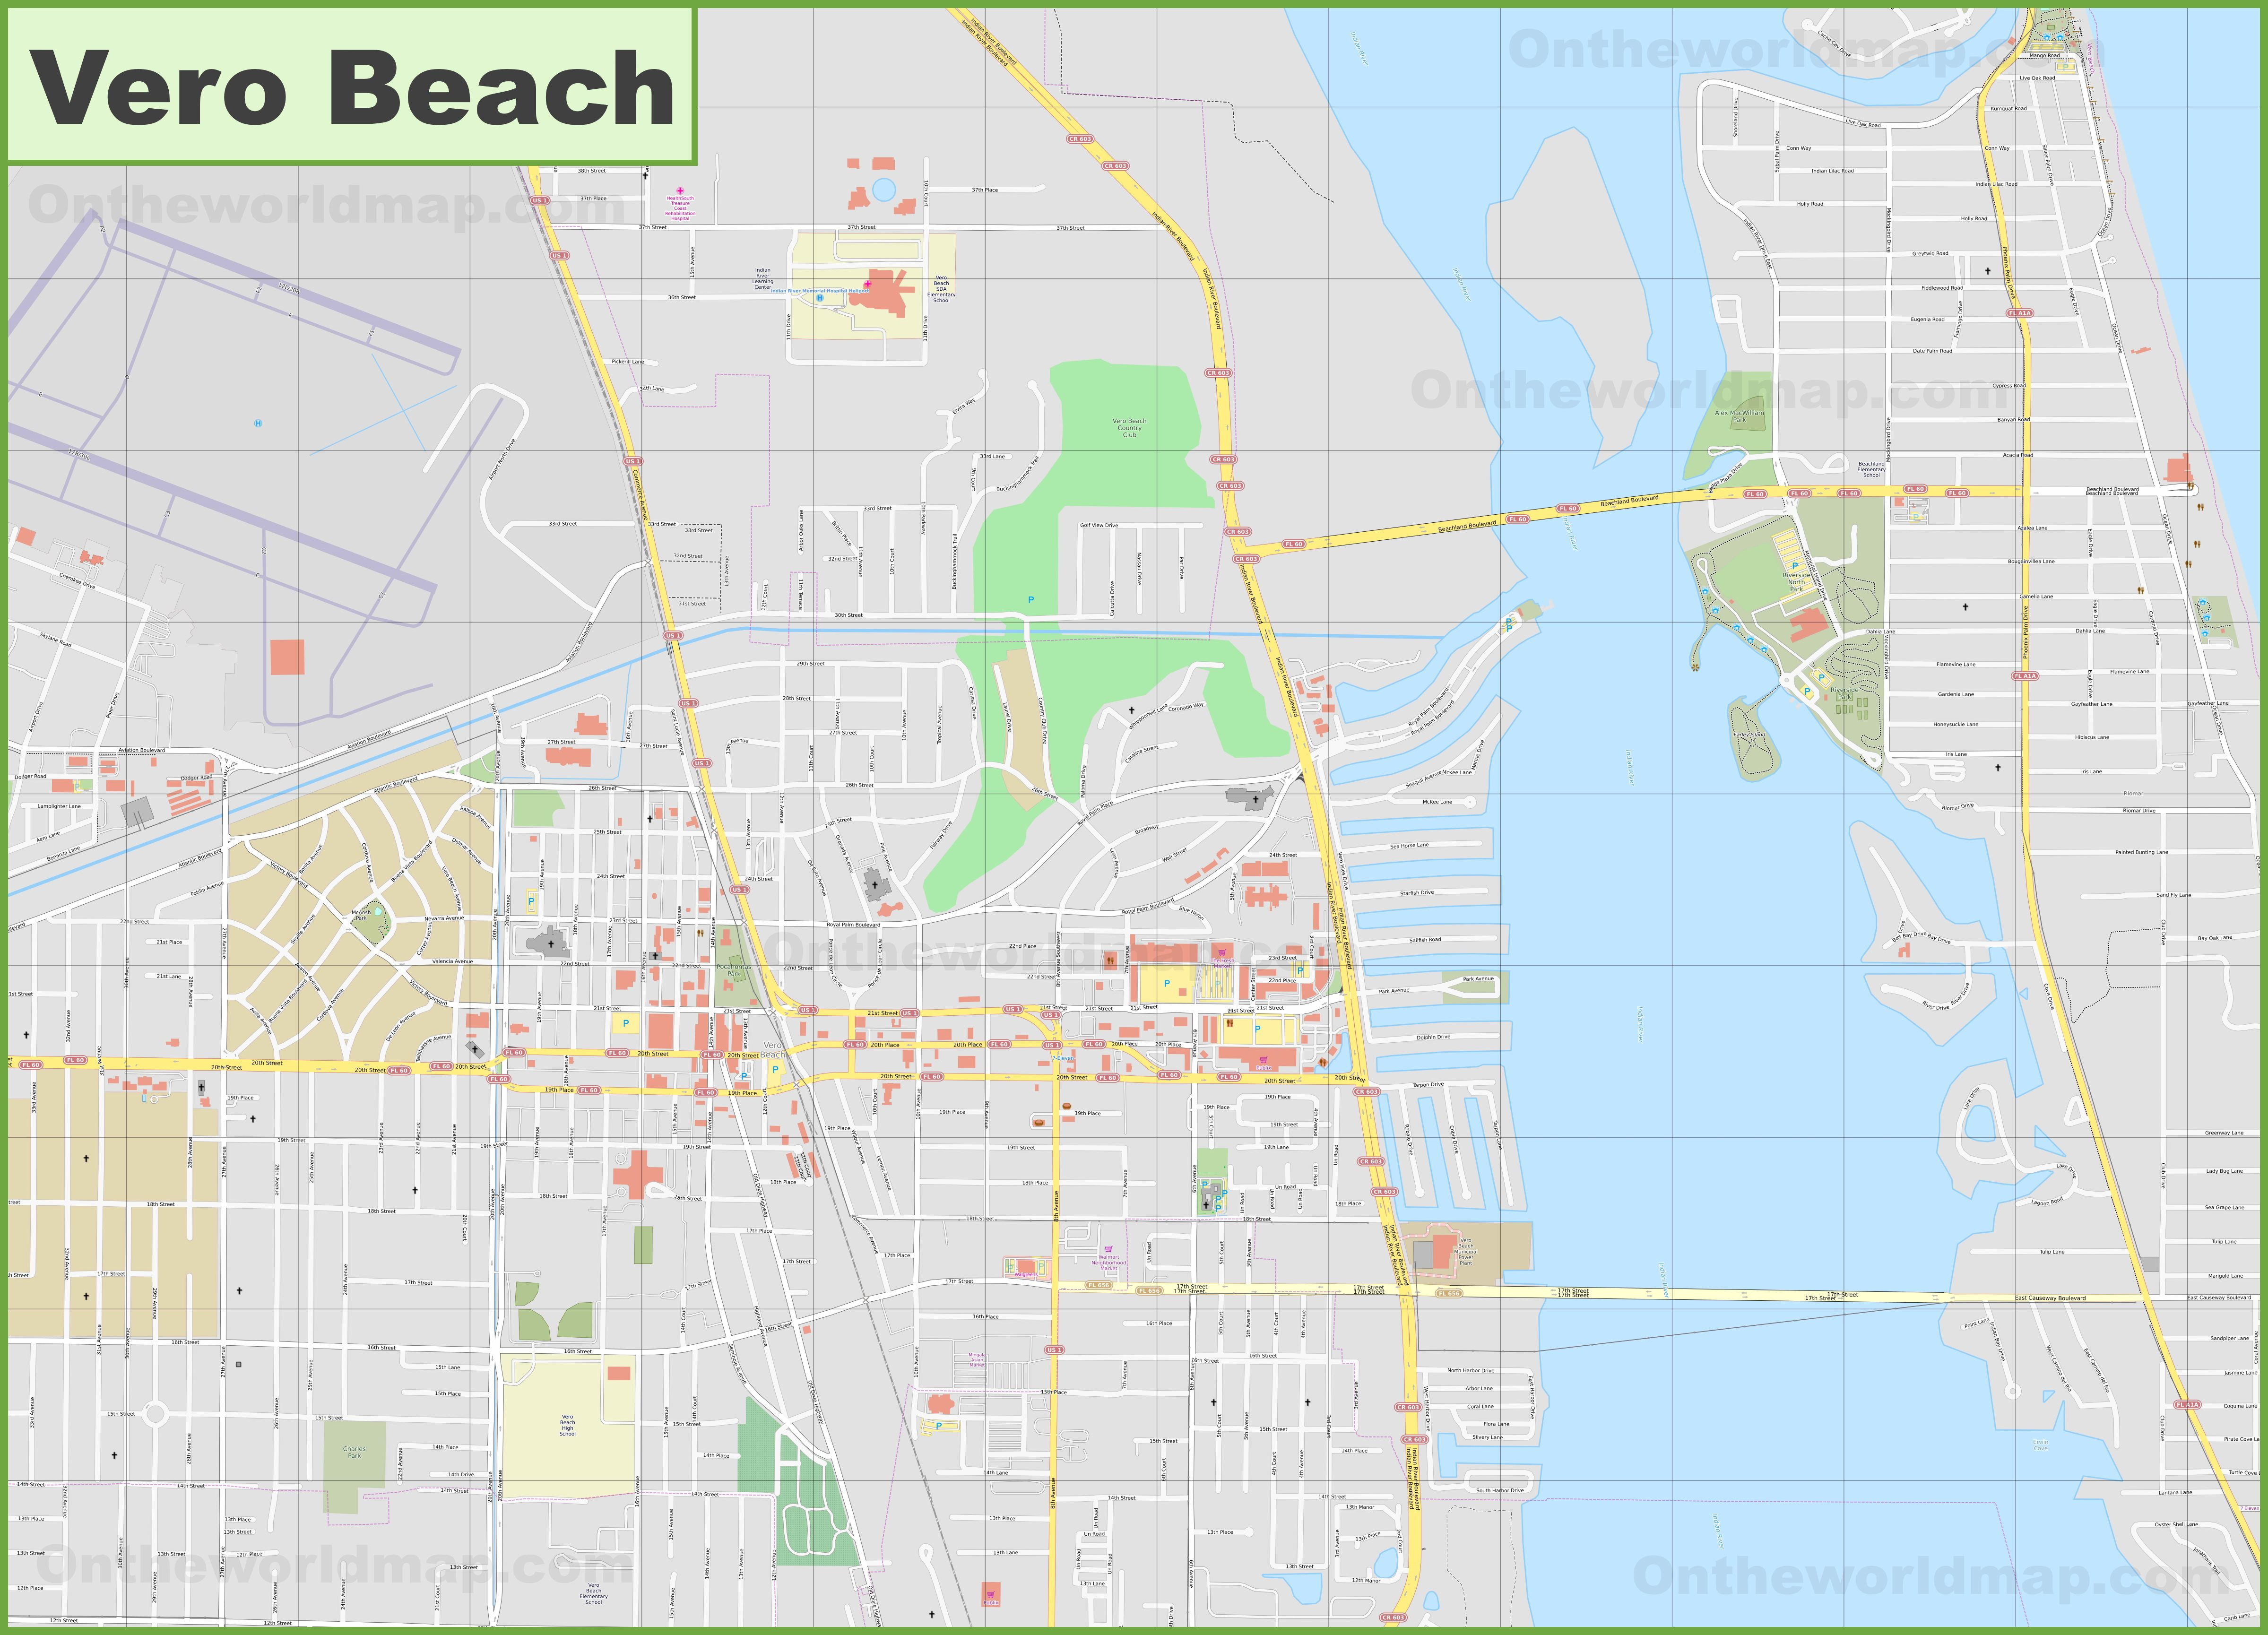 Large Detailed Map Of Vero Beach - Where Is Vero Beach Florida On The Map